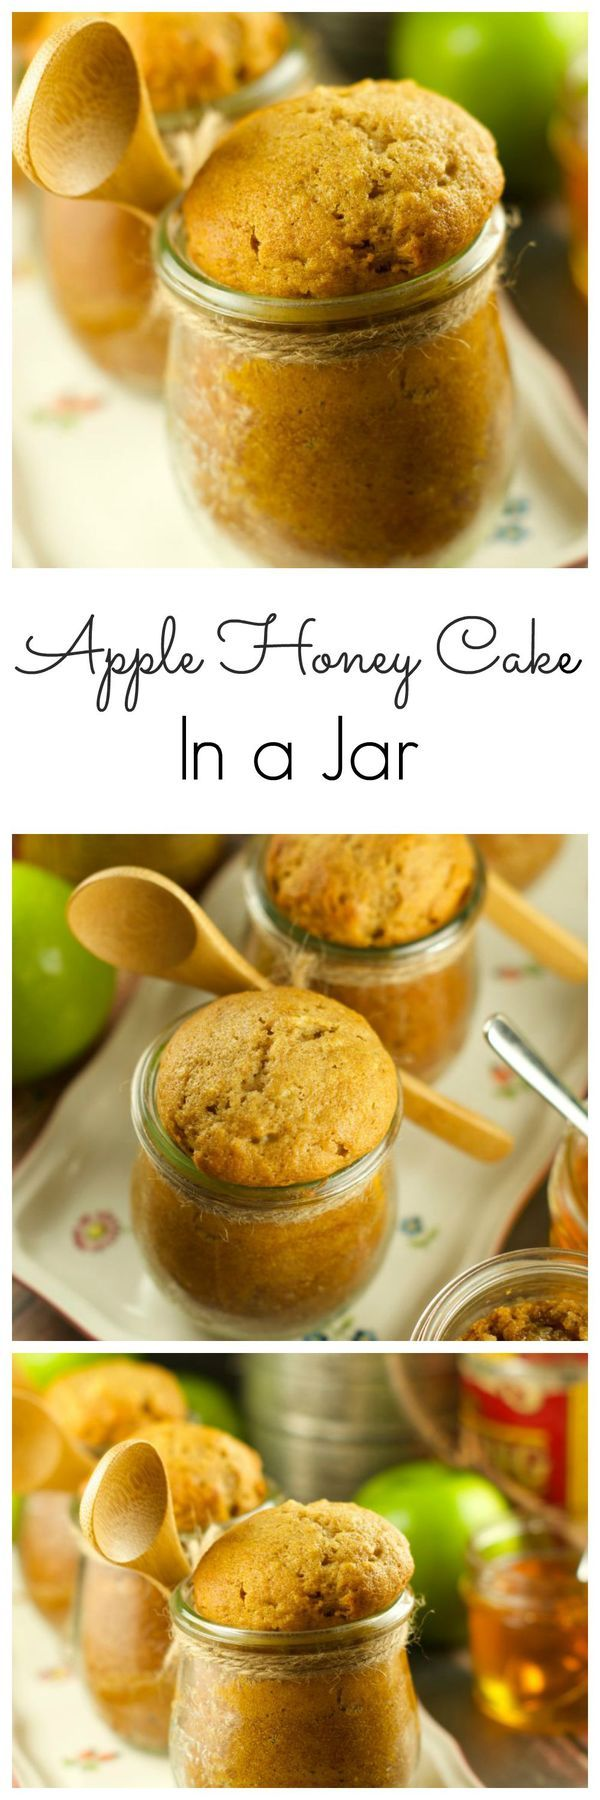 Apple Honey Cake In A Jar: celebrate Rosh Hashanah with these delicious & moist apple honey cakes in a jar. Give them out as gifts or serve them for dessert. More jewish recipes at livingsweetmoments.com